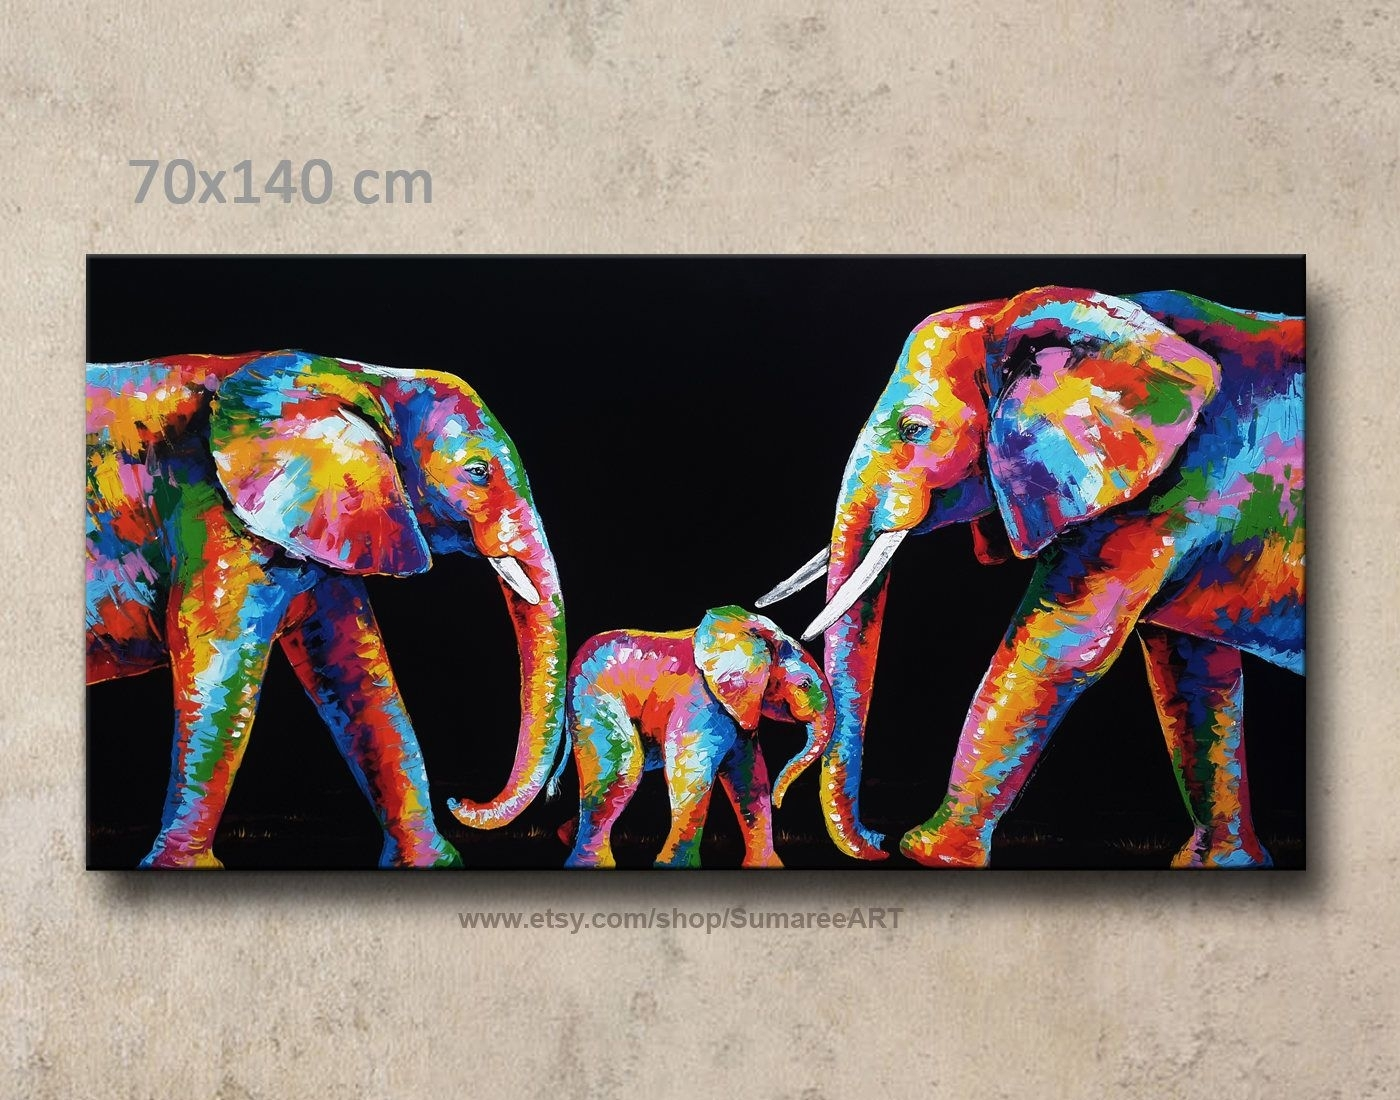 70 X 140 Cm,colorful Elephant Painting Wall Decor | Canvas Wall For Most Current Abstract Elephant Wall Art (View 5 of 20)